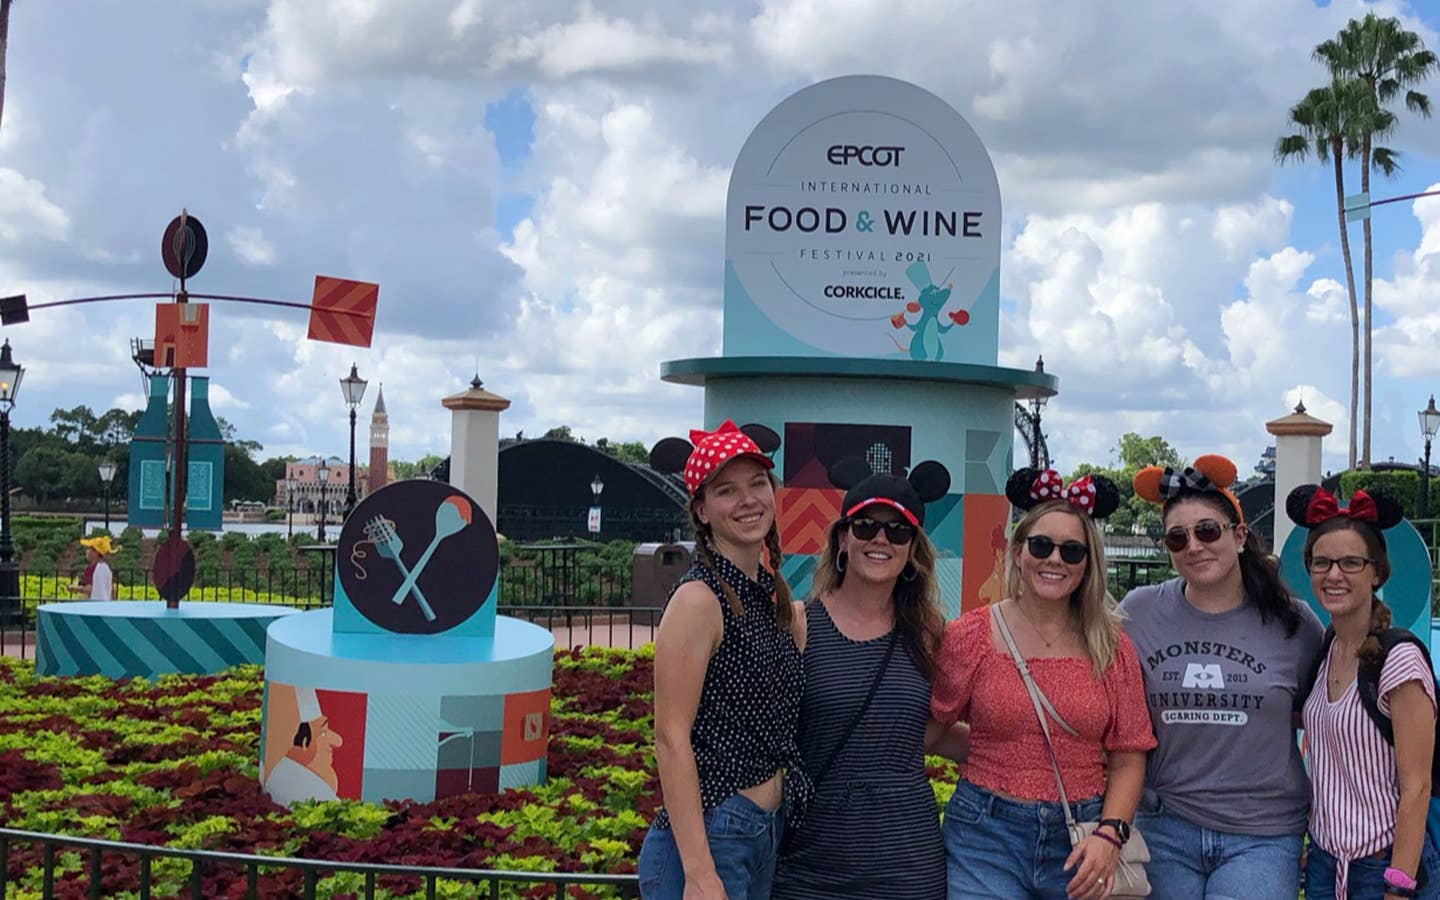 Five caucasian women wearing Mickey and Minnie ears stand in front of a display for the Epcot International Food & Wine Festival near the World Showcase Lagoon.